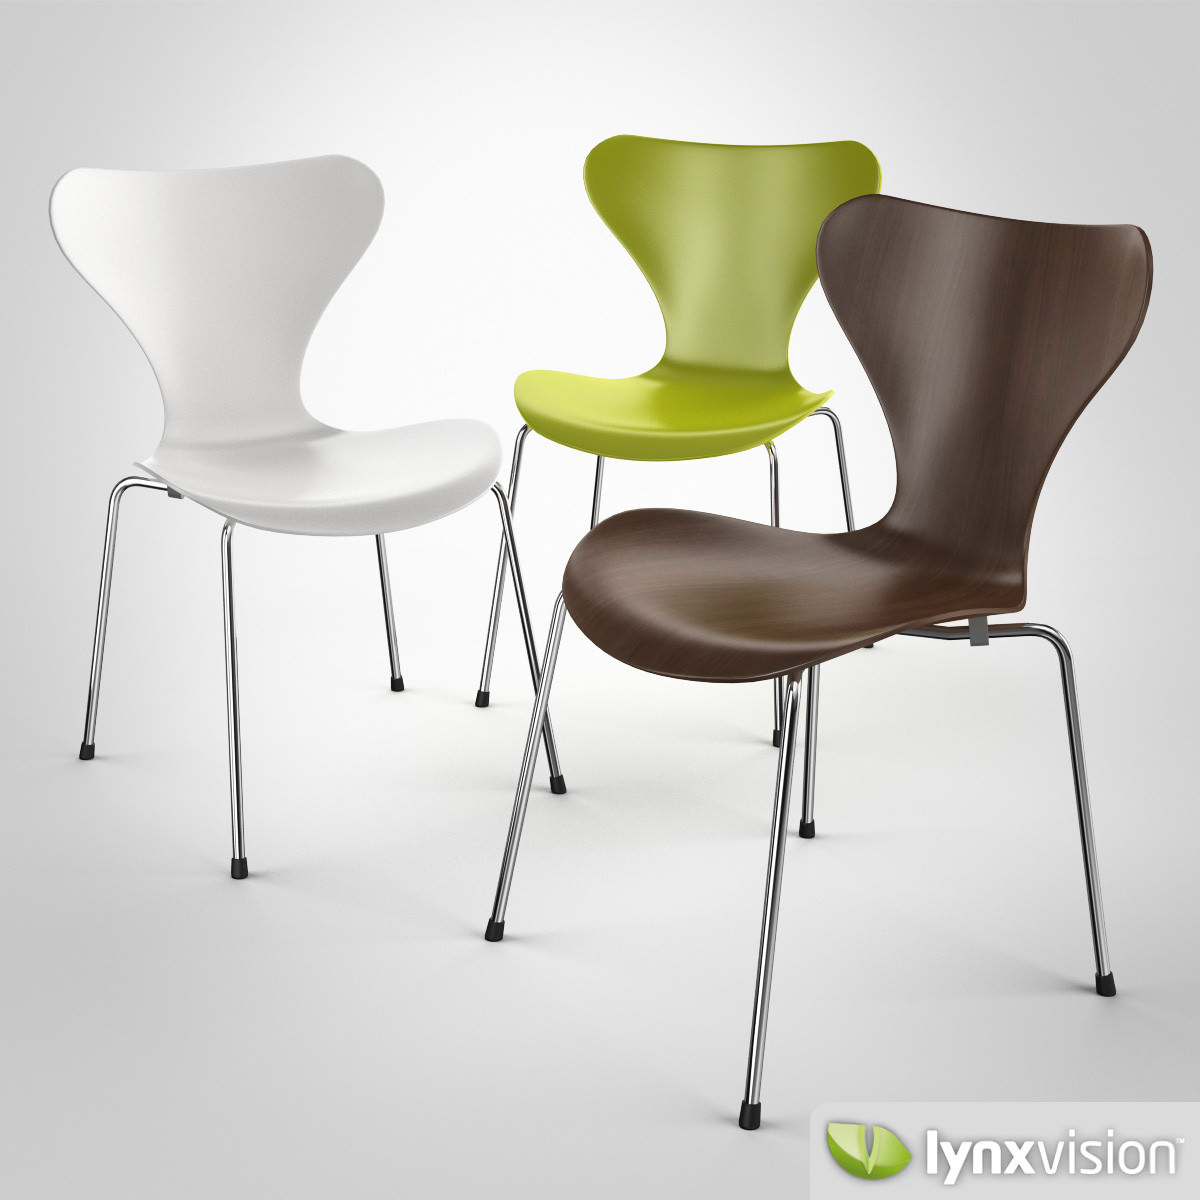 serie 7 chair by arne jacobsen 3d model max obj fbx. Black Bedroom Furniture Sets. Home Design Ideas